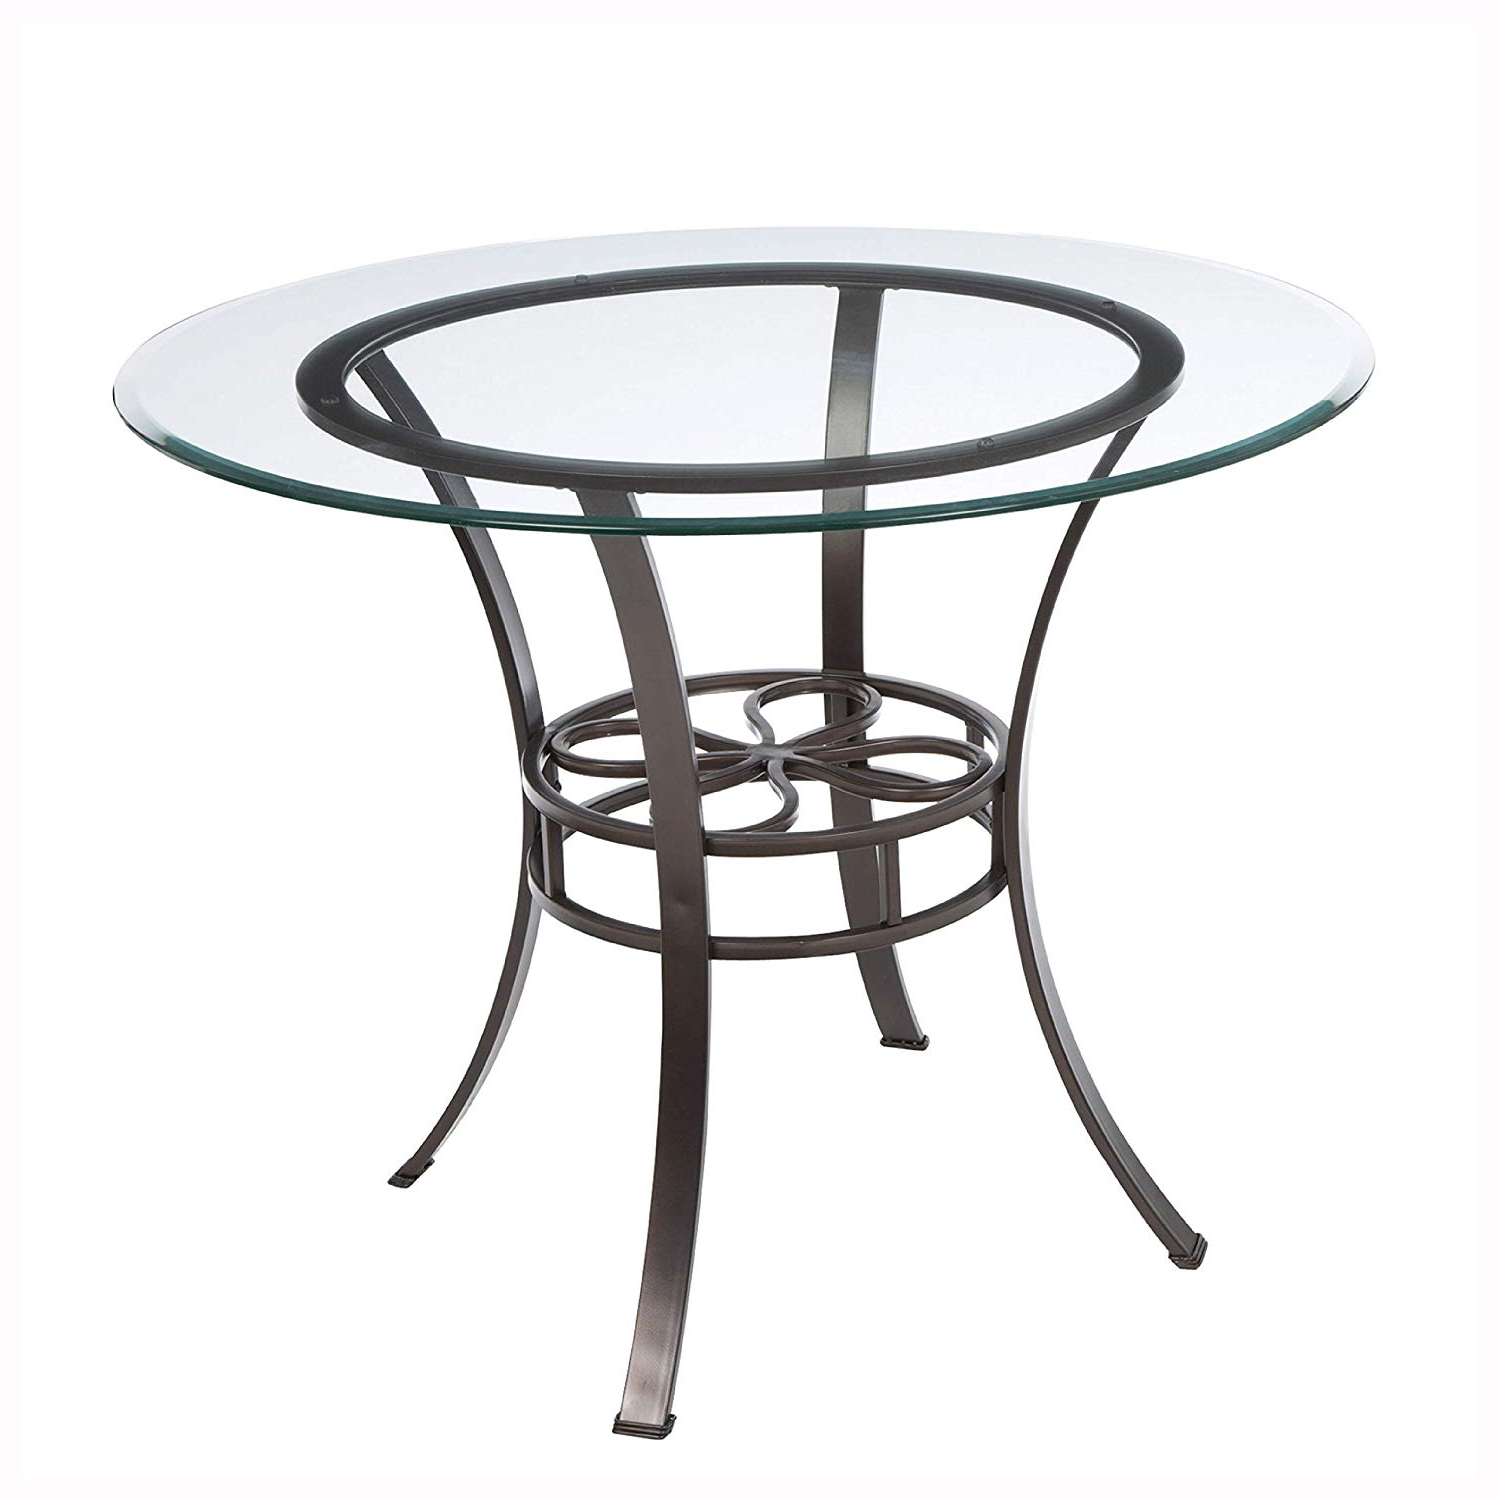 Recent Round Glass Top Dining Tables within Amazon - Round Glass Top Dining Table With Durable Metal